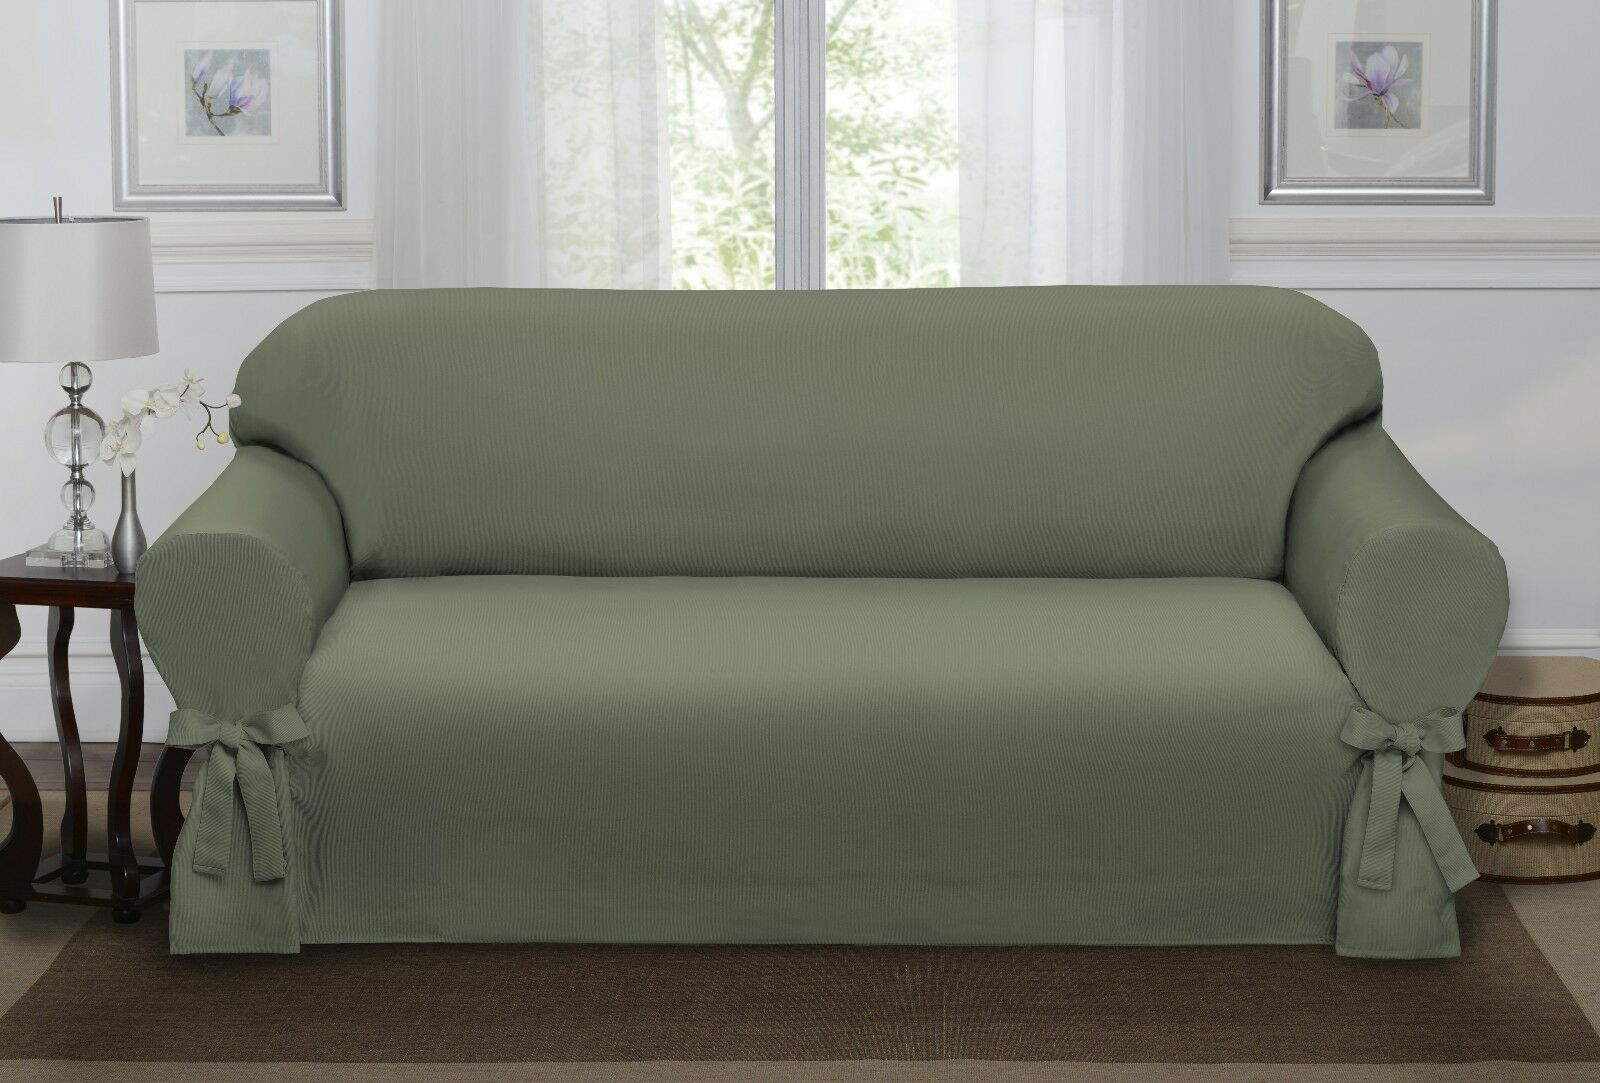 Couch And Chair Covers Sage Green Loden Lucerne Sofa Slipcover Couch Cover Sofa